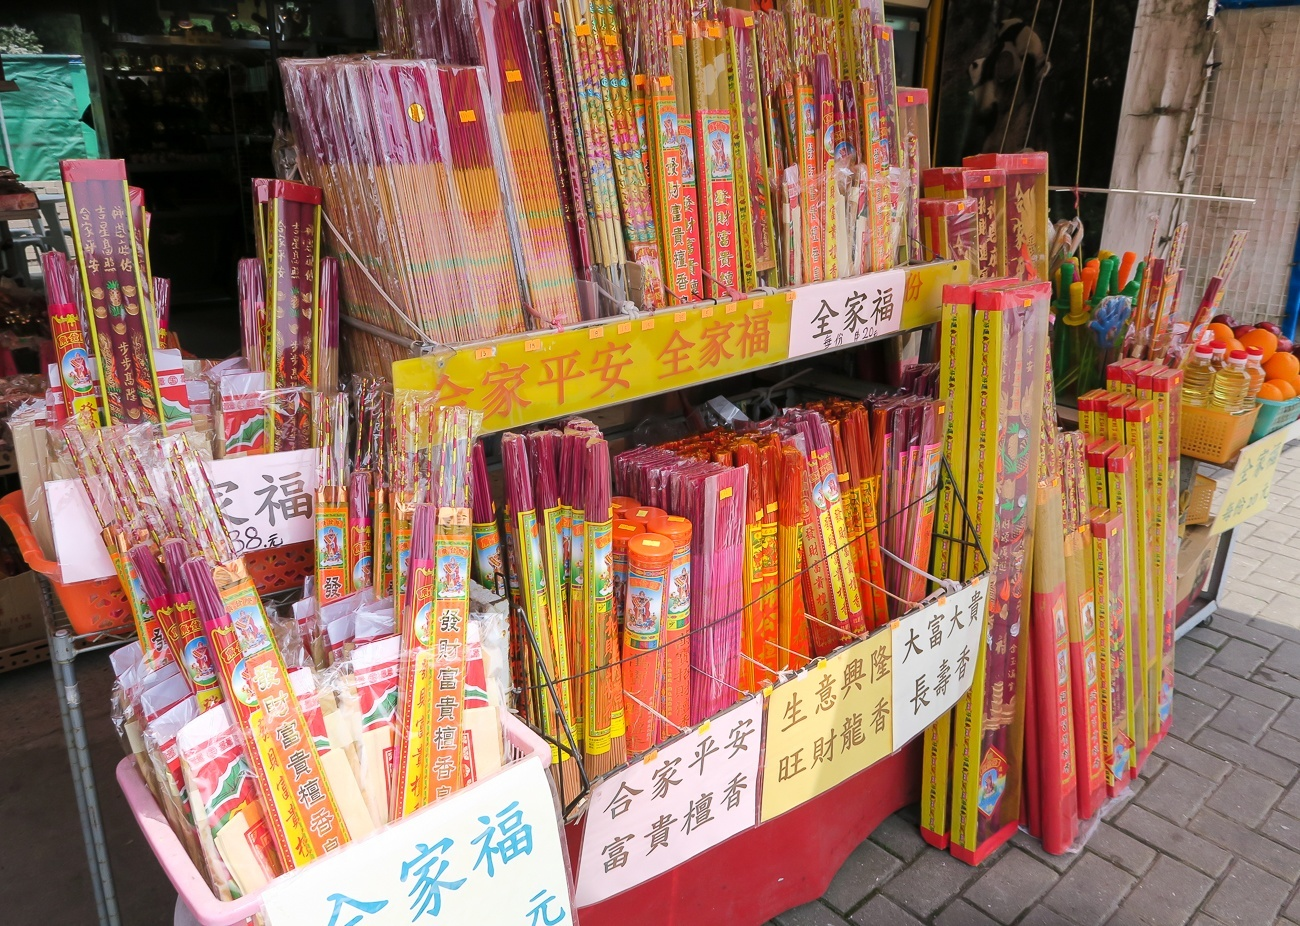 You can buy incense to offer at the Po Lin Monastery in Hong Kong